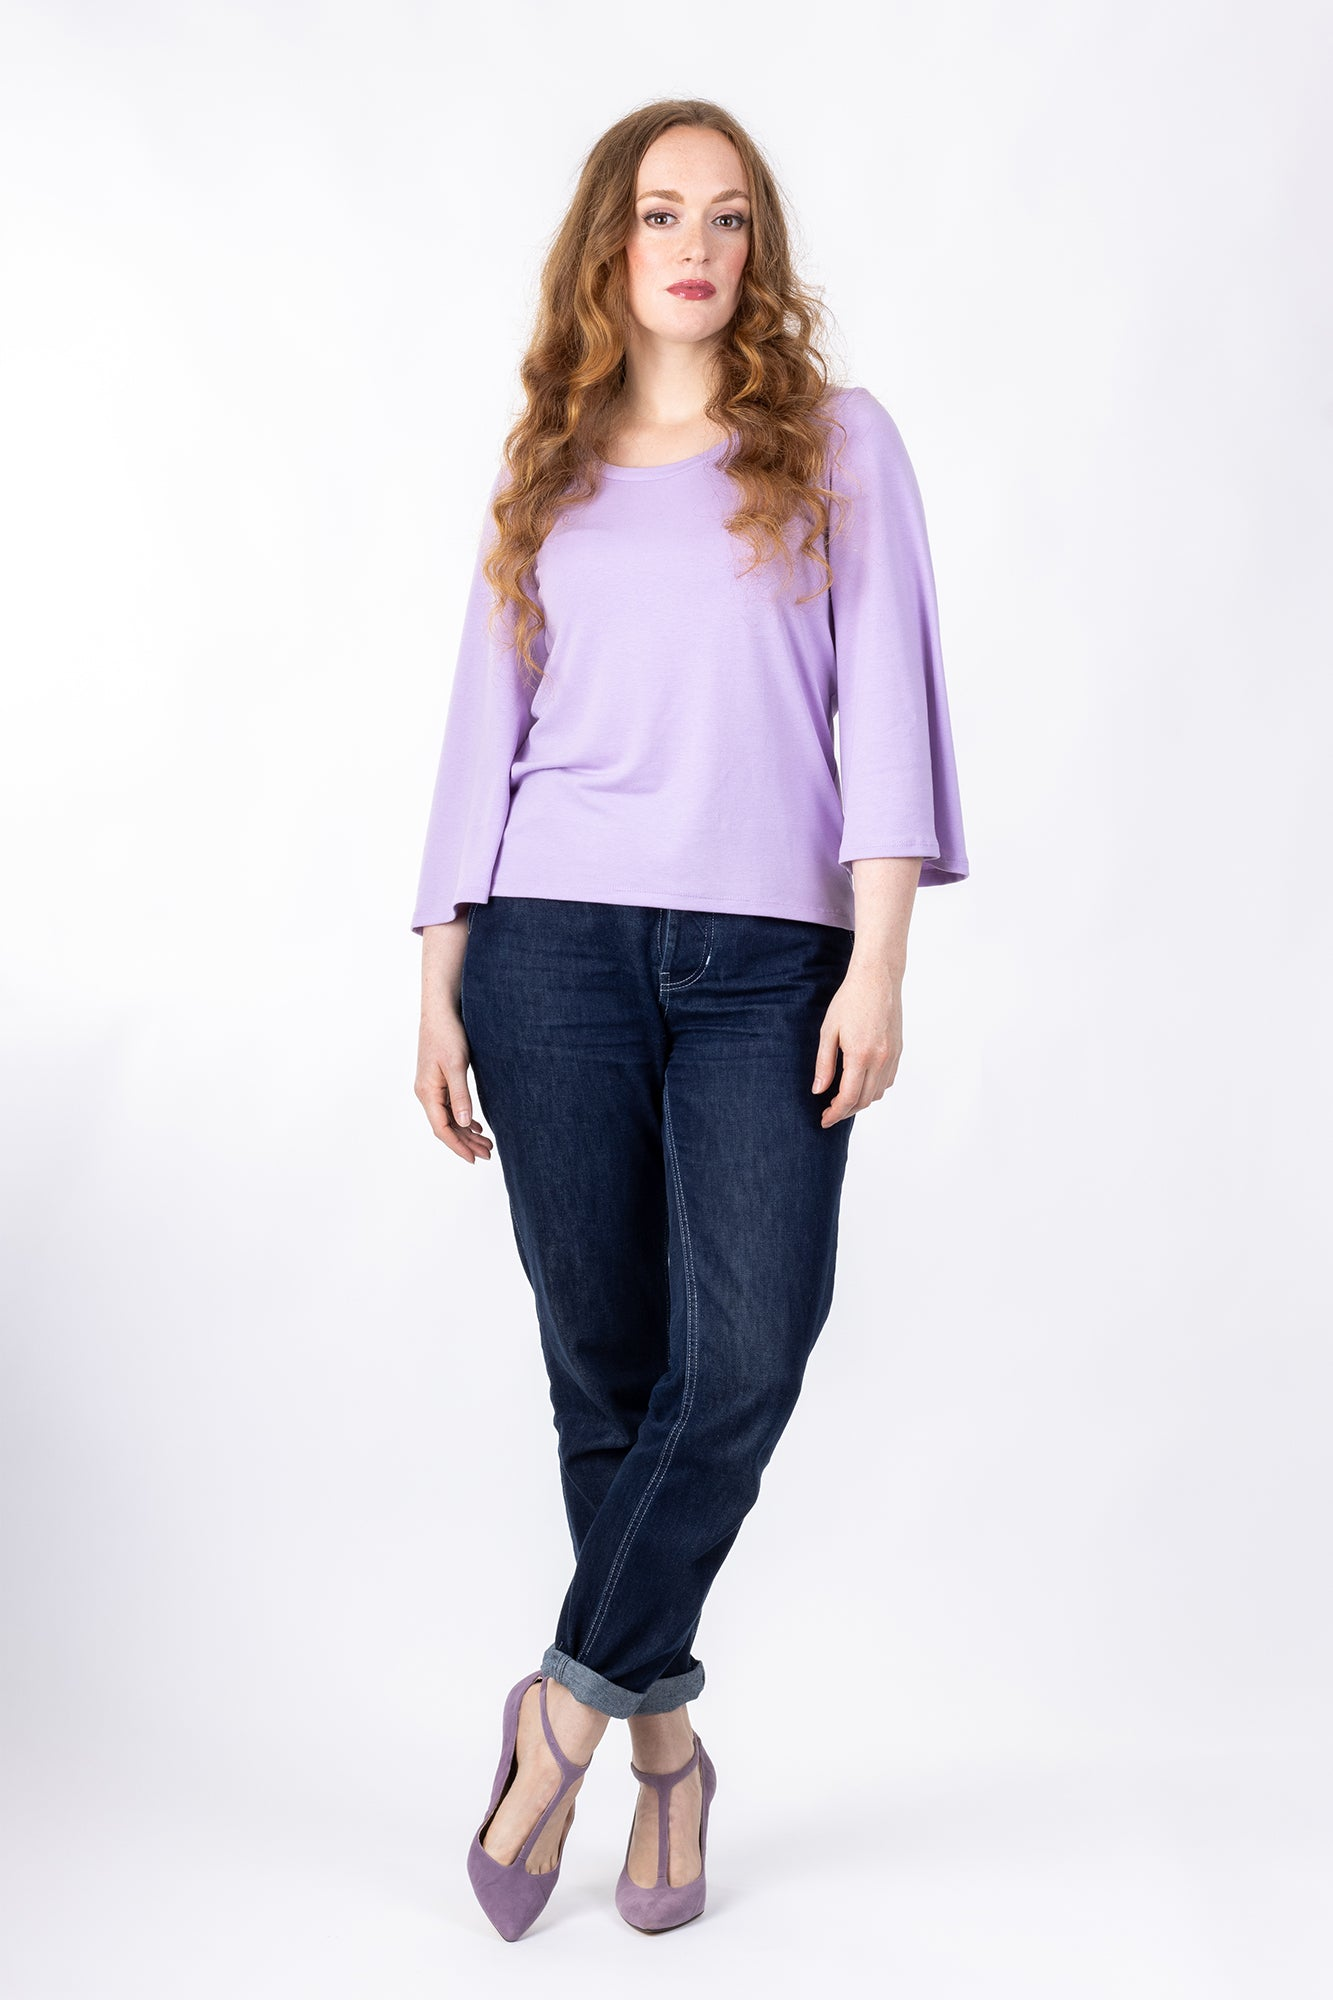 Scoop neck variant for Vera shirt, in lilac with wide three quarter sleeves, full front view